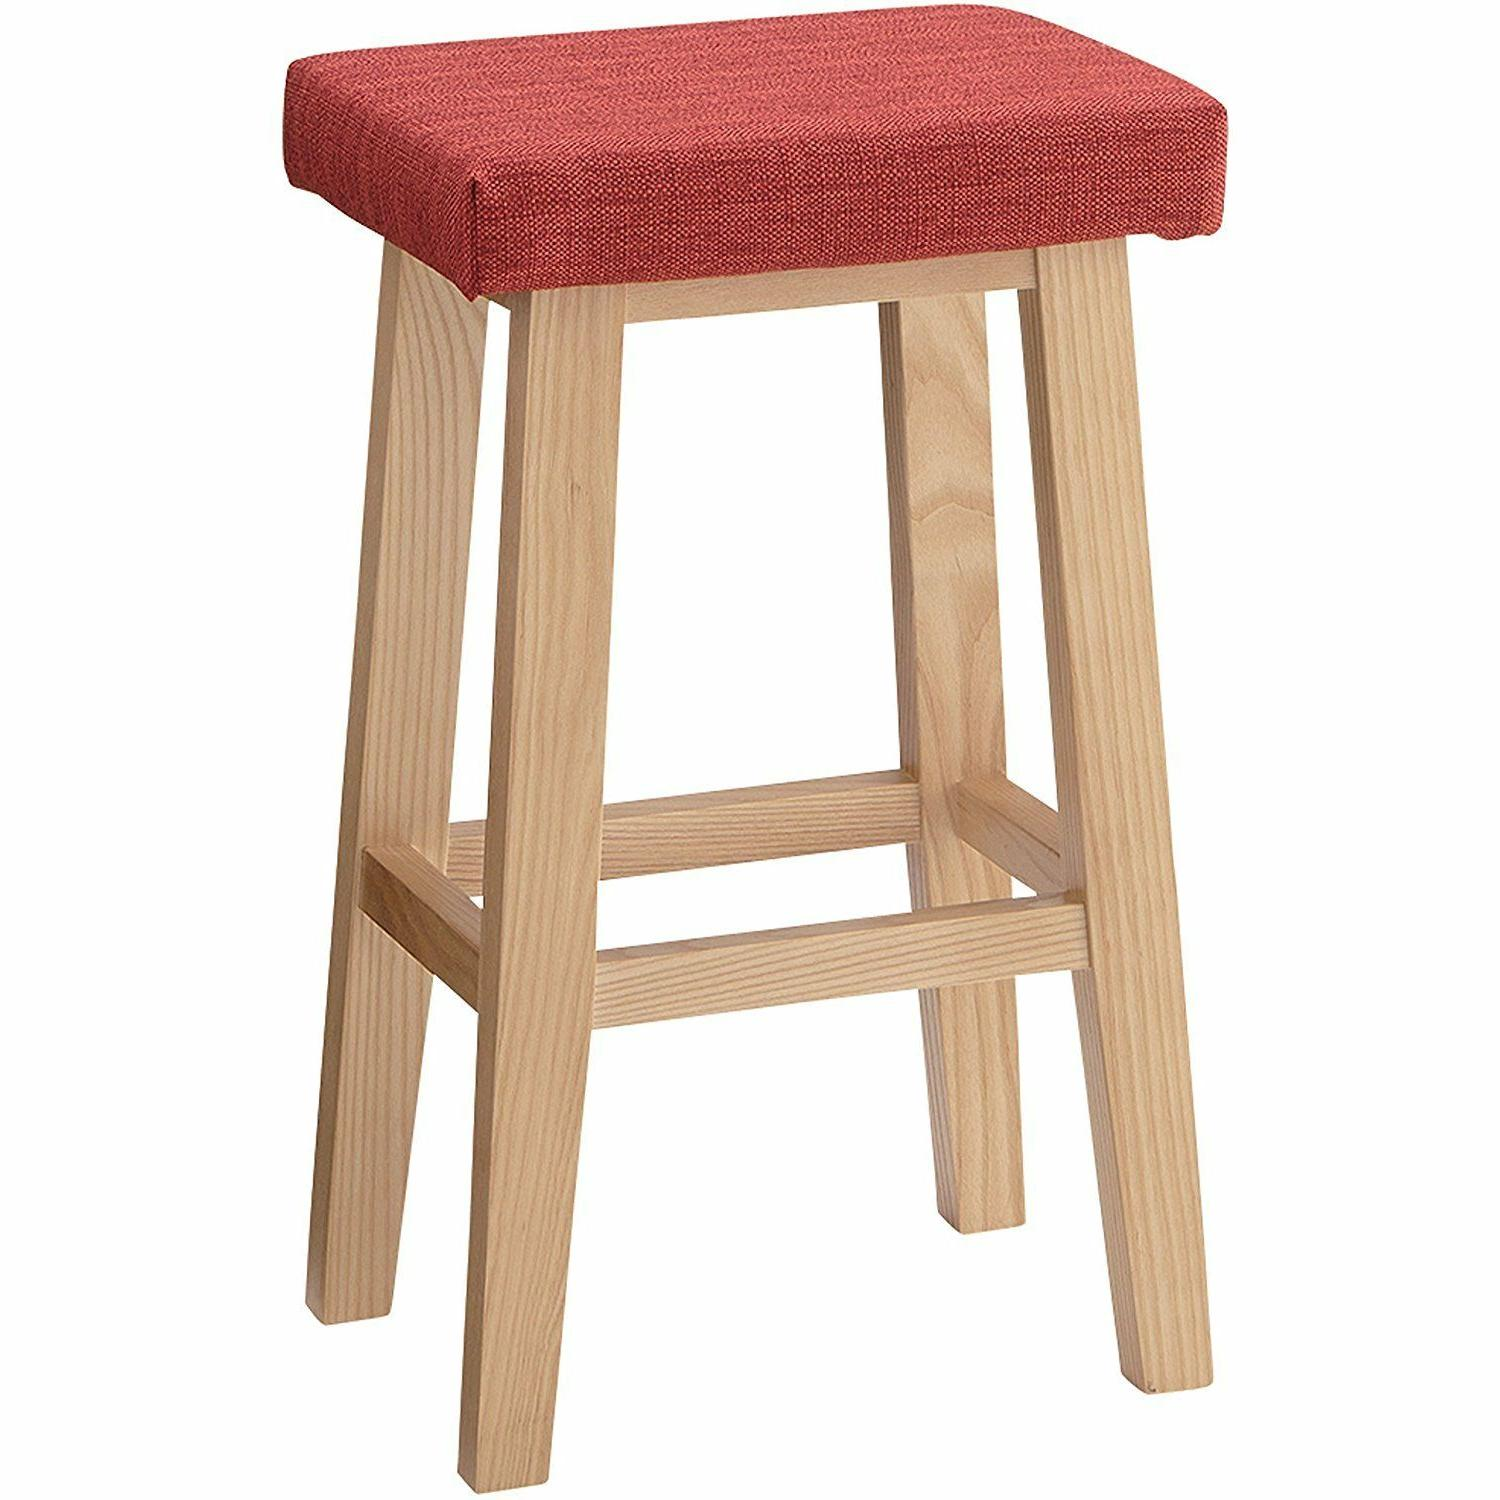 wooden high chair counter red stool kitchen